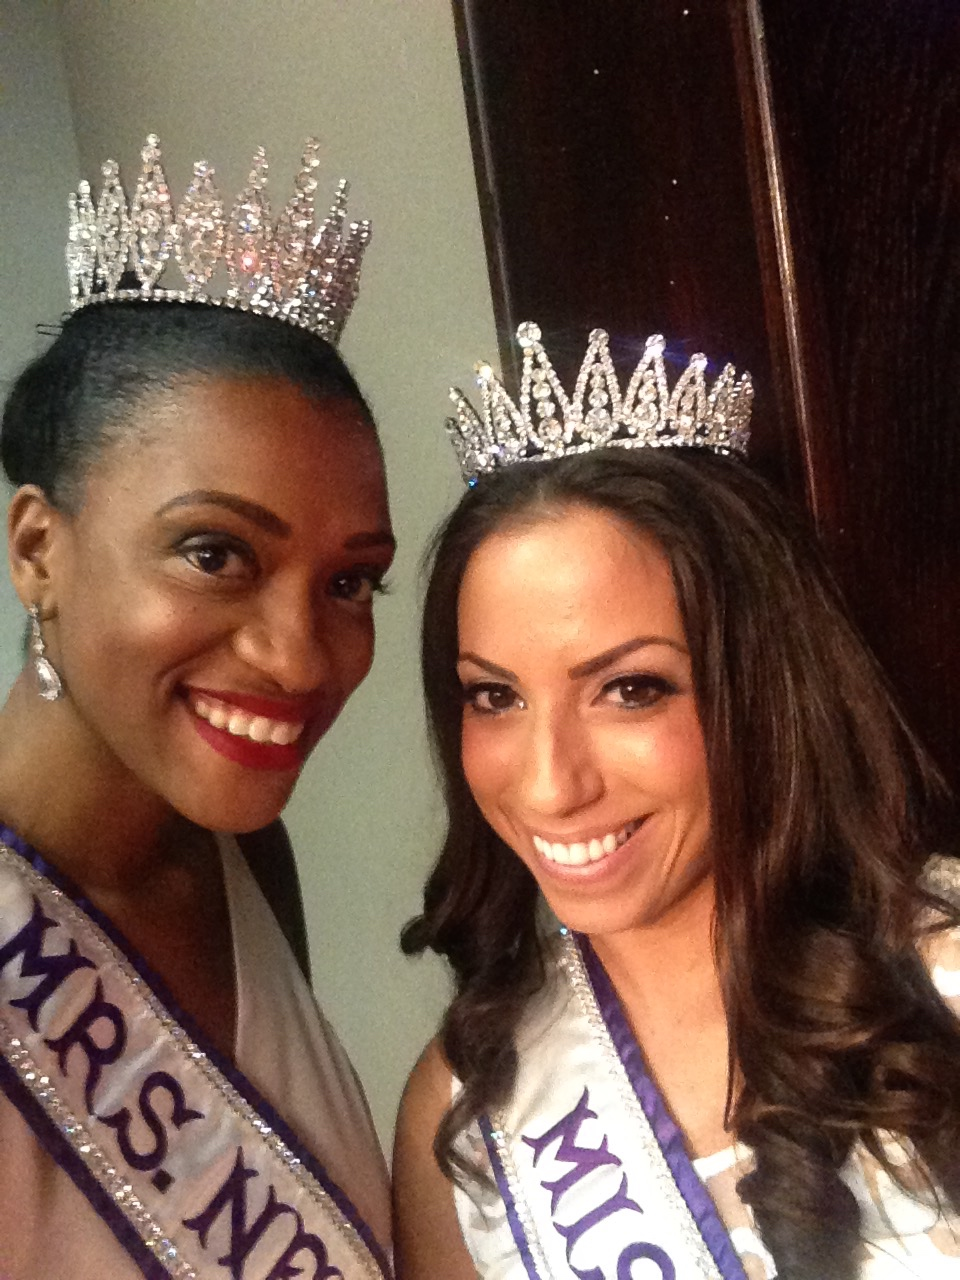 Me and my Miss New York